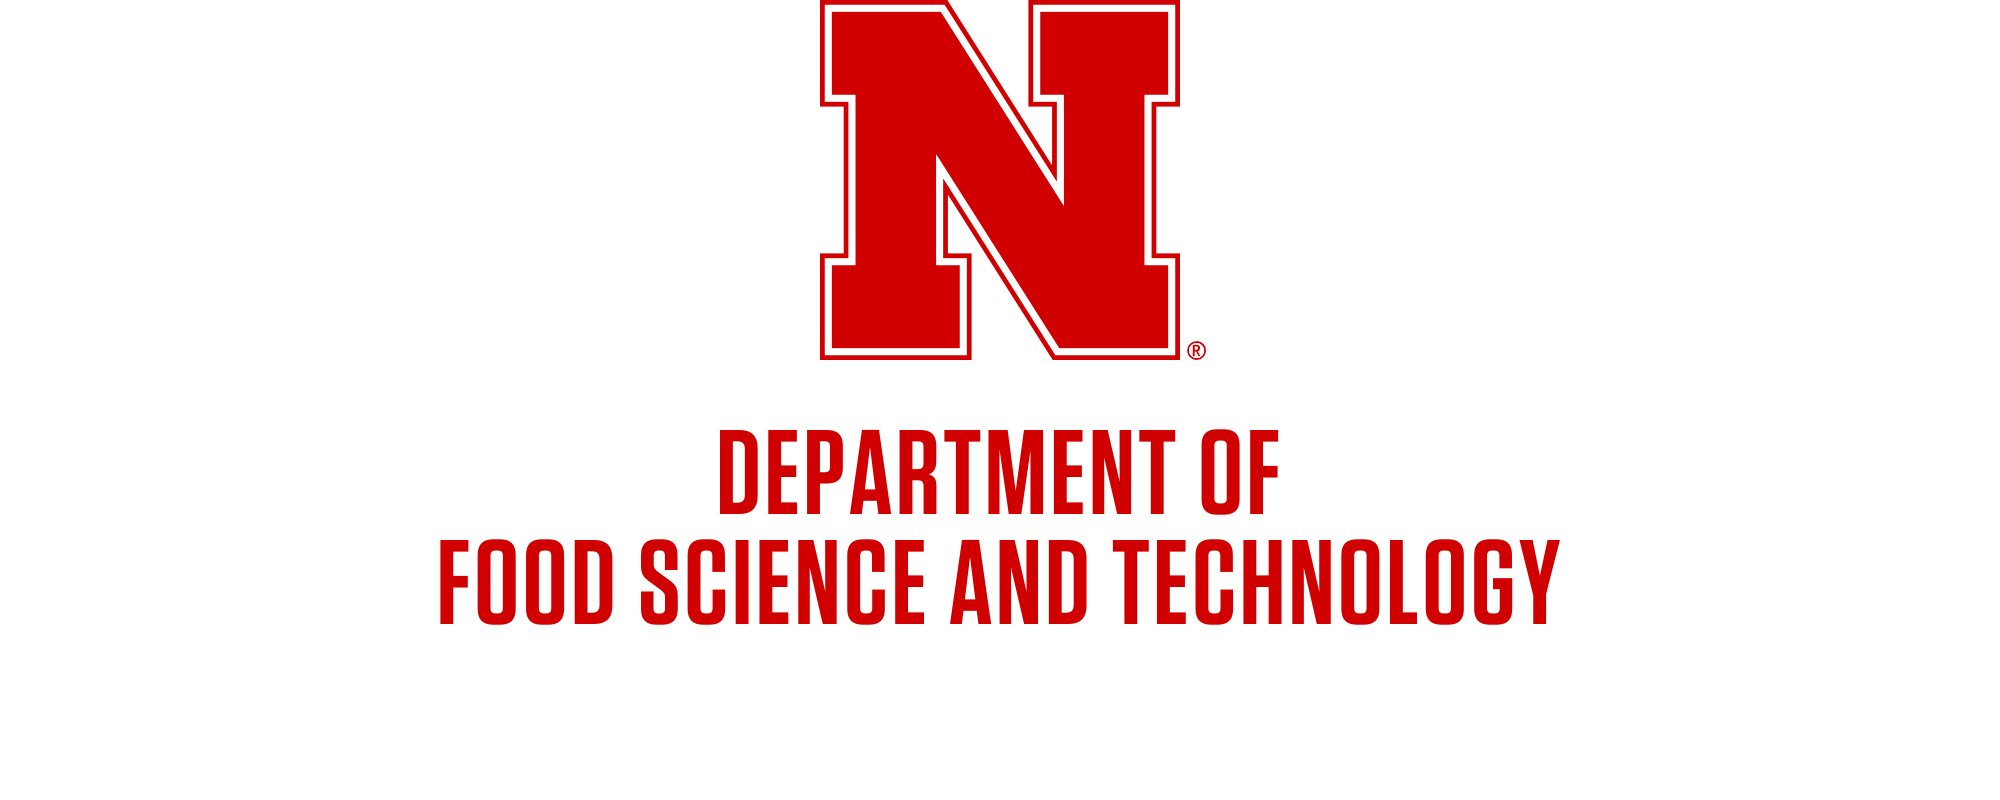 University of Nebraska–Lincoln Department of Food Science and Technology logo